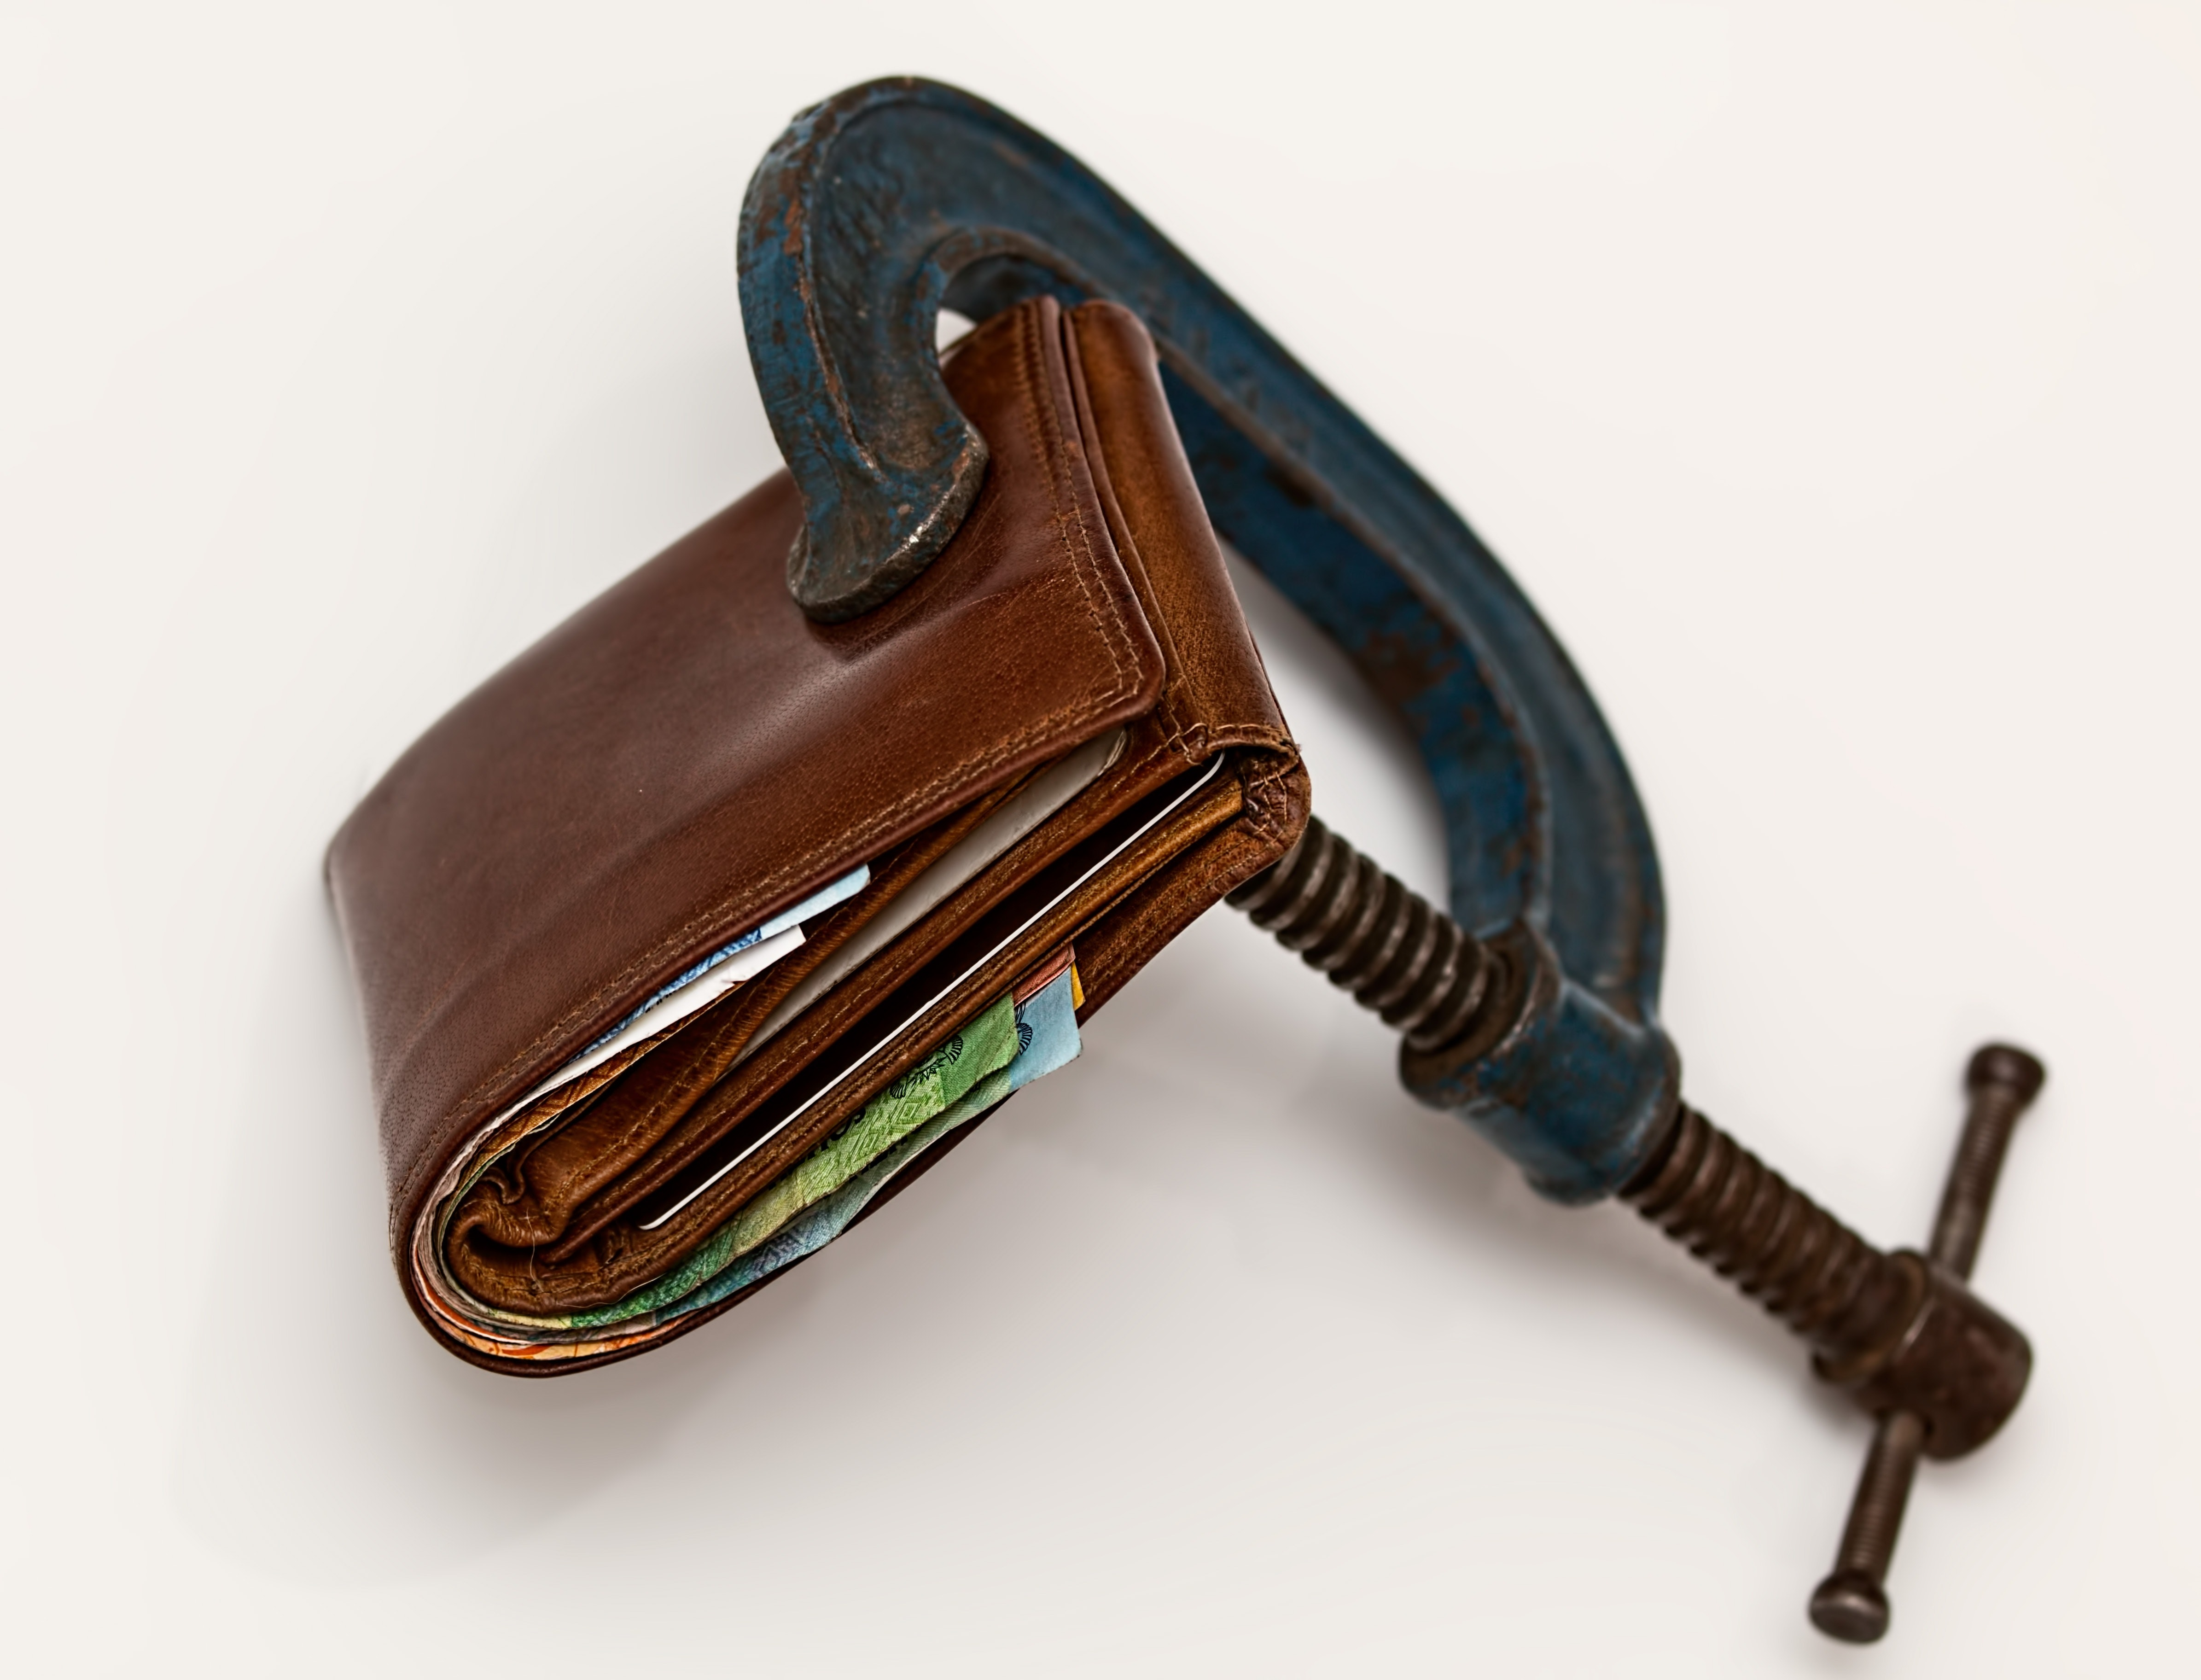 Brown Leather Wallet Using Blue Steel Clap, Cash, Close-up, Leather, Metal, HQ Photo